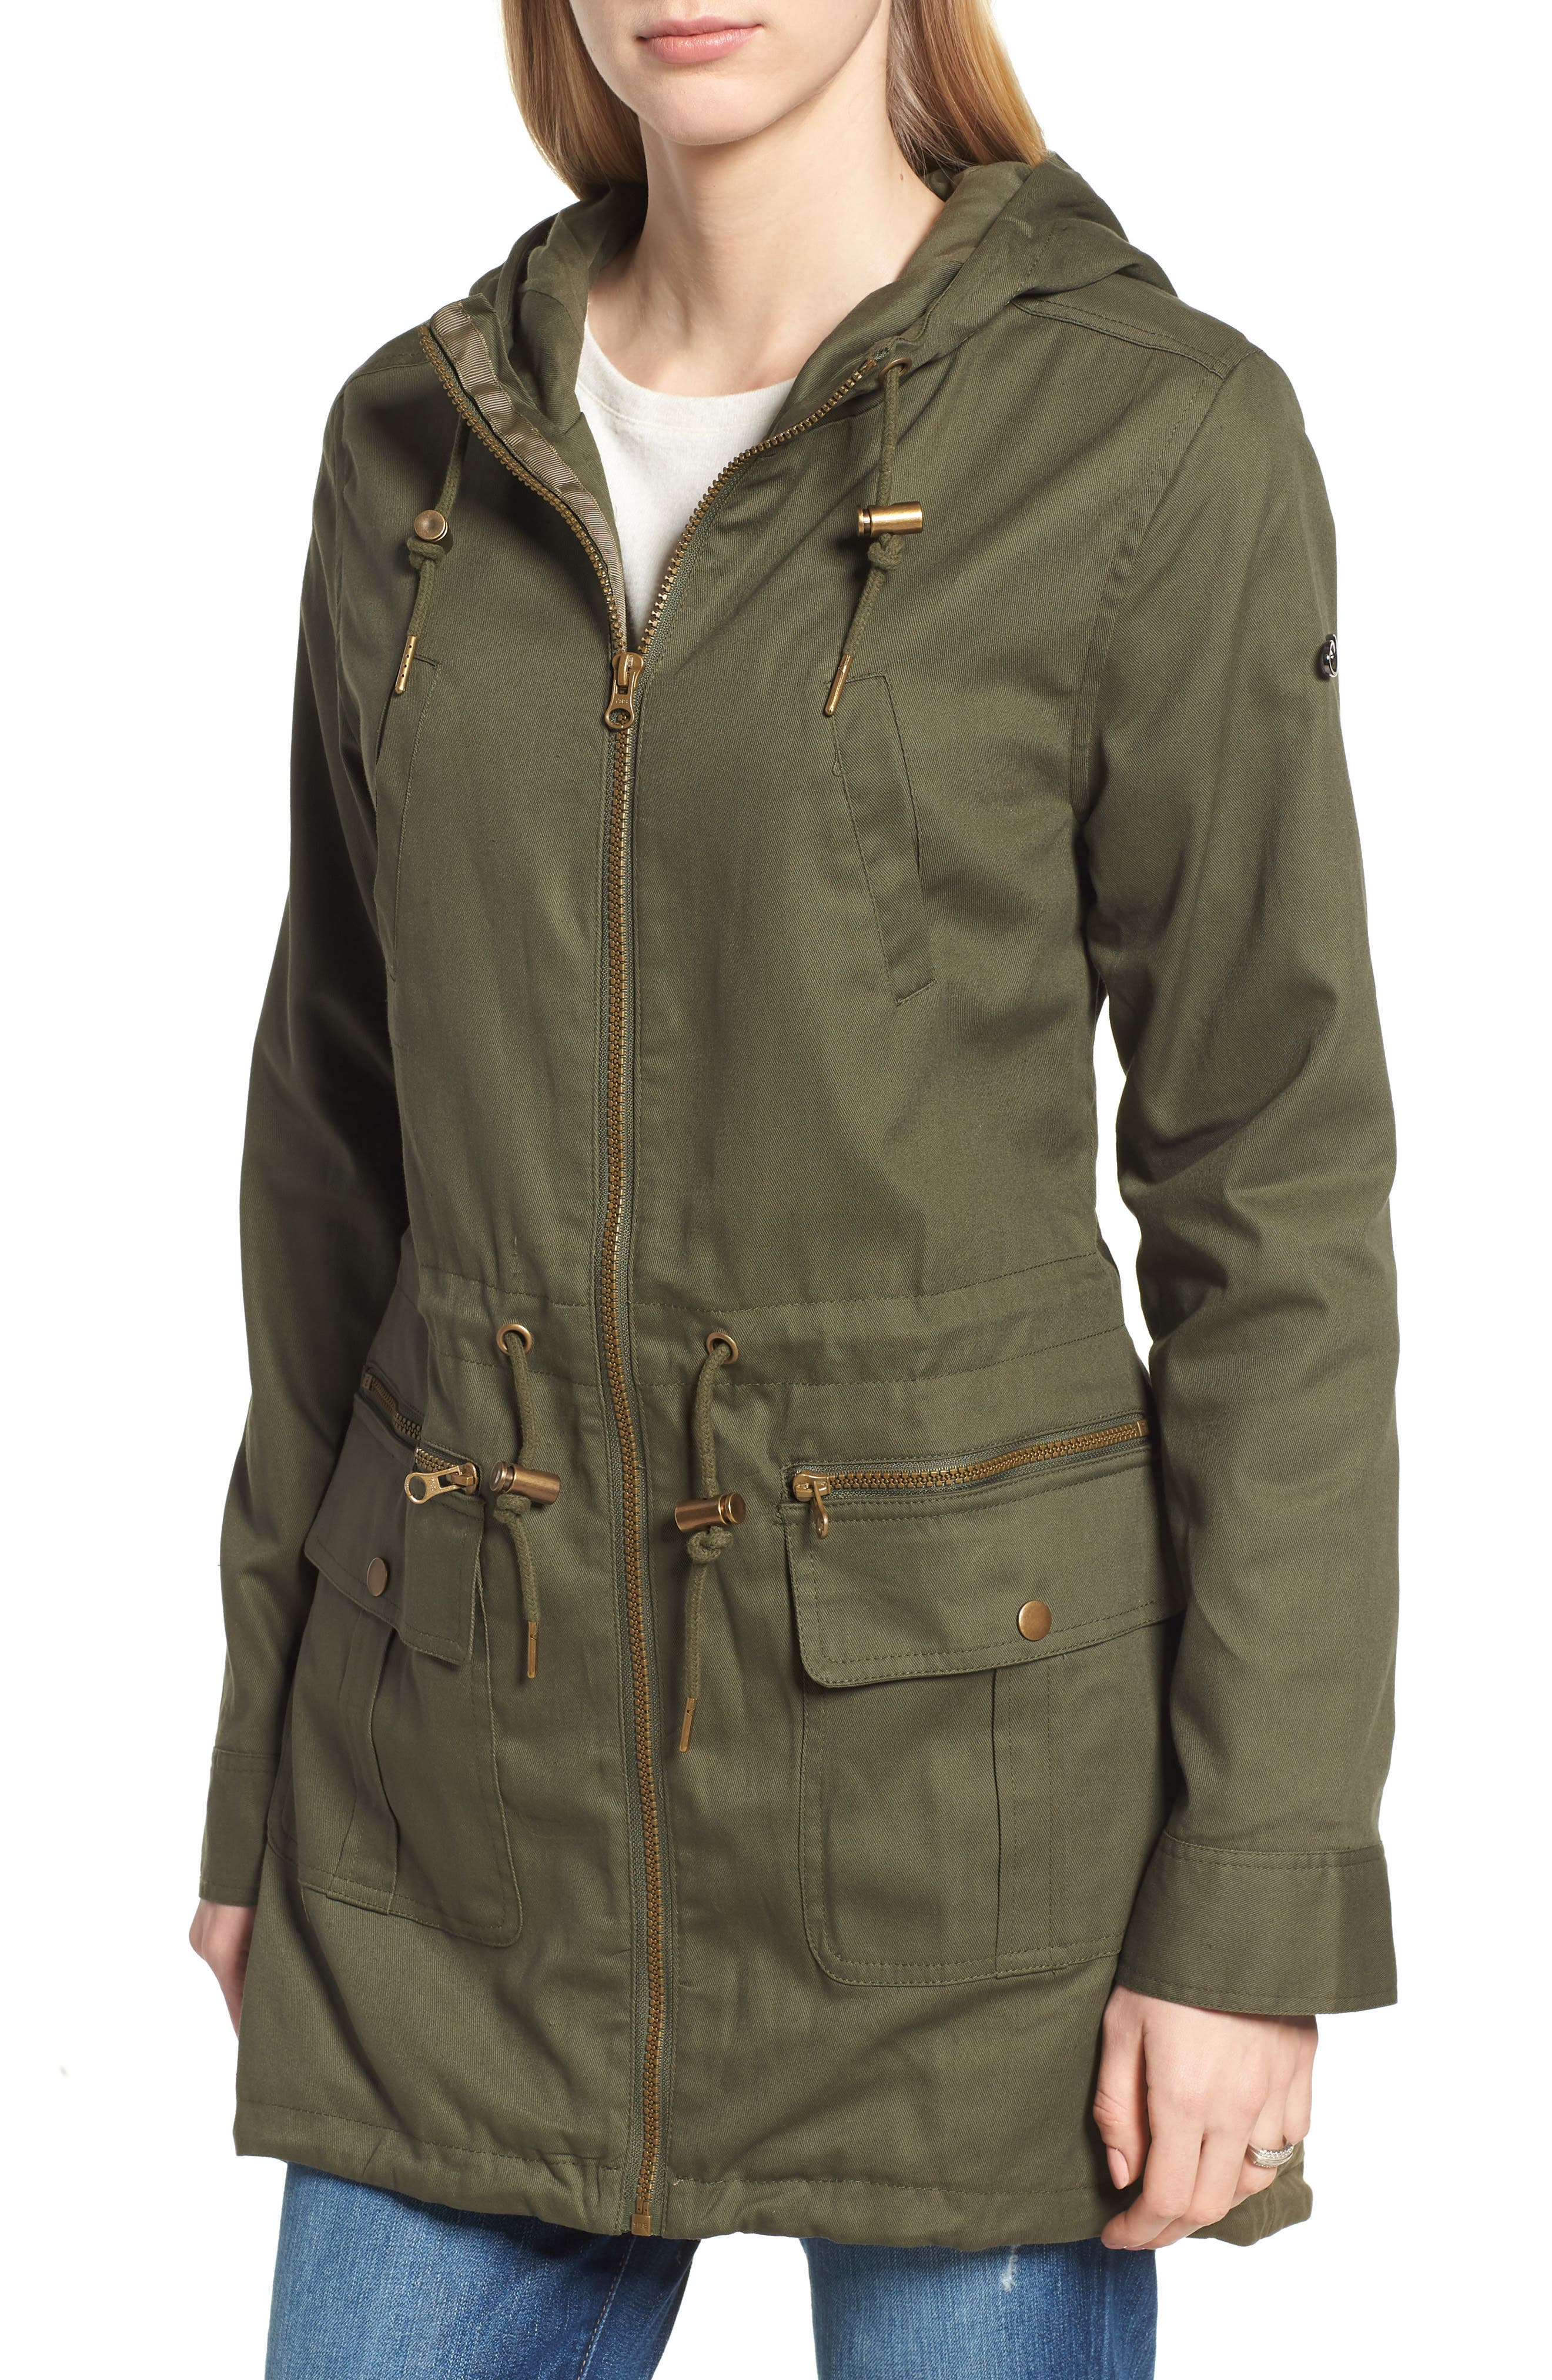 Convertible Military 3-in-1 Maternity/Nursing Jacket,                             Alternate thumbnail 2, color,                             KHAKI GREEN